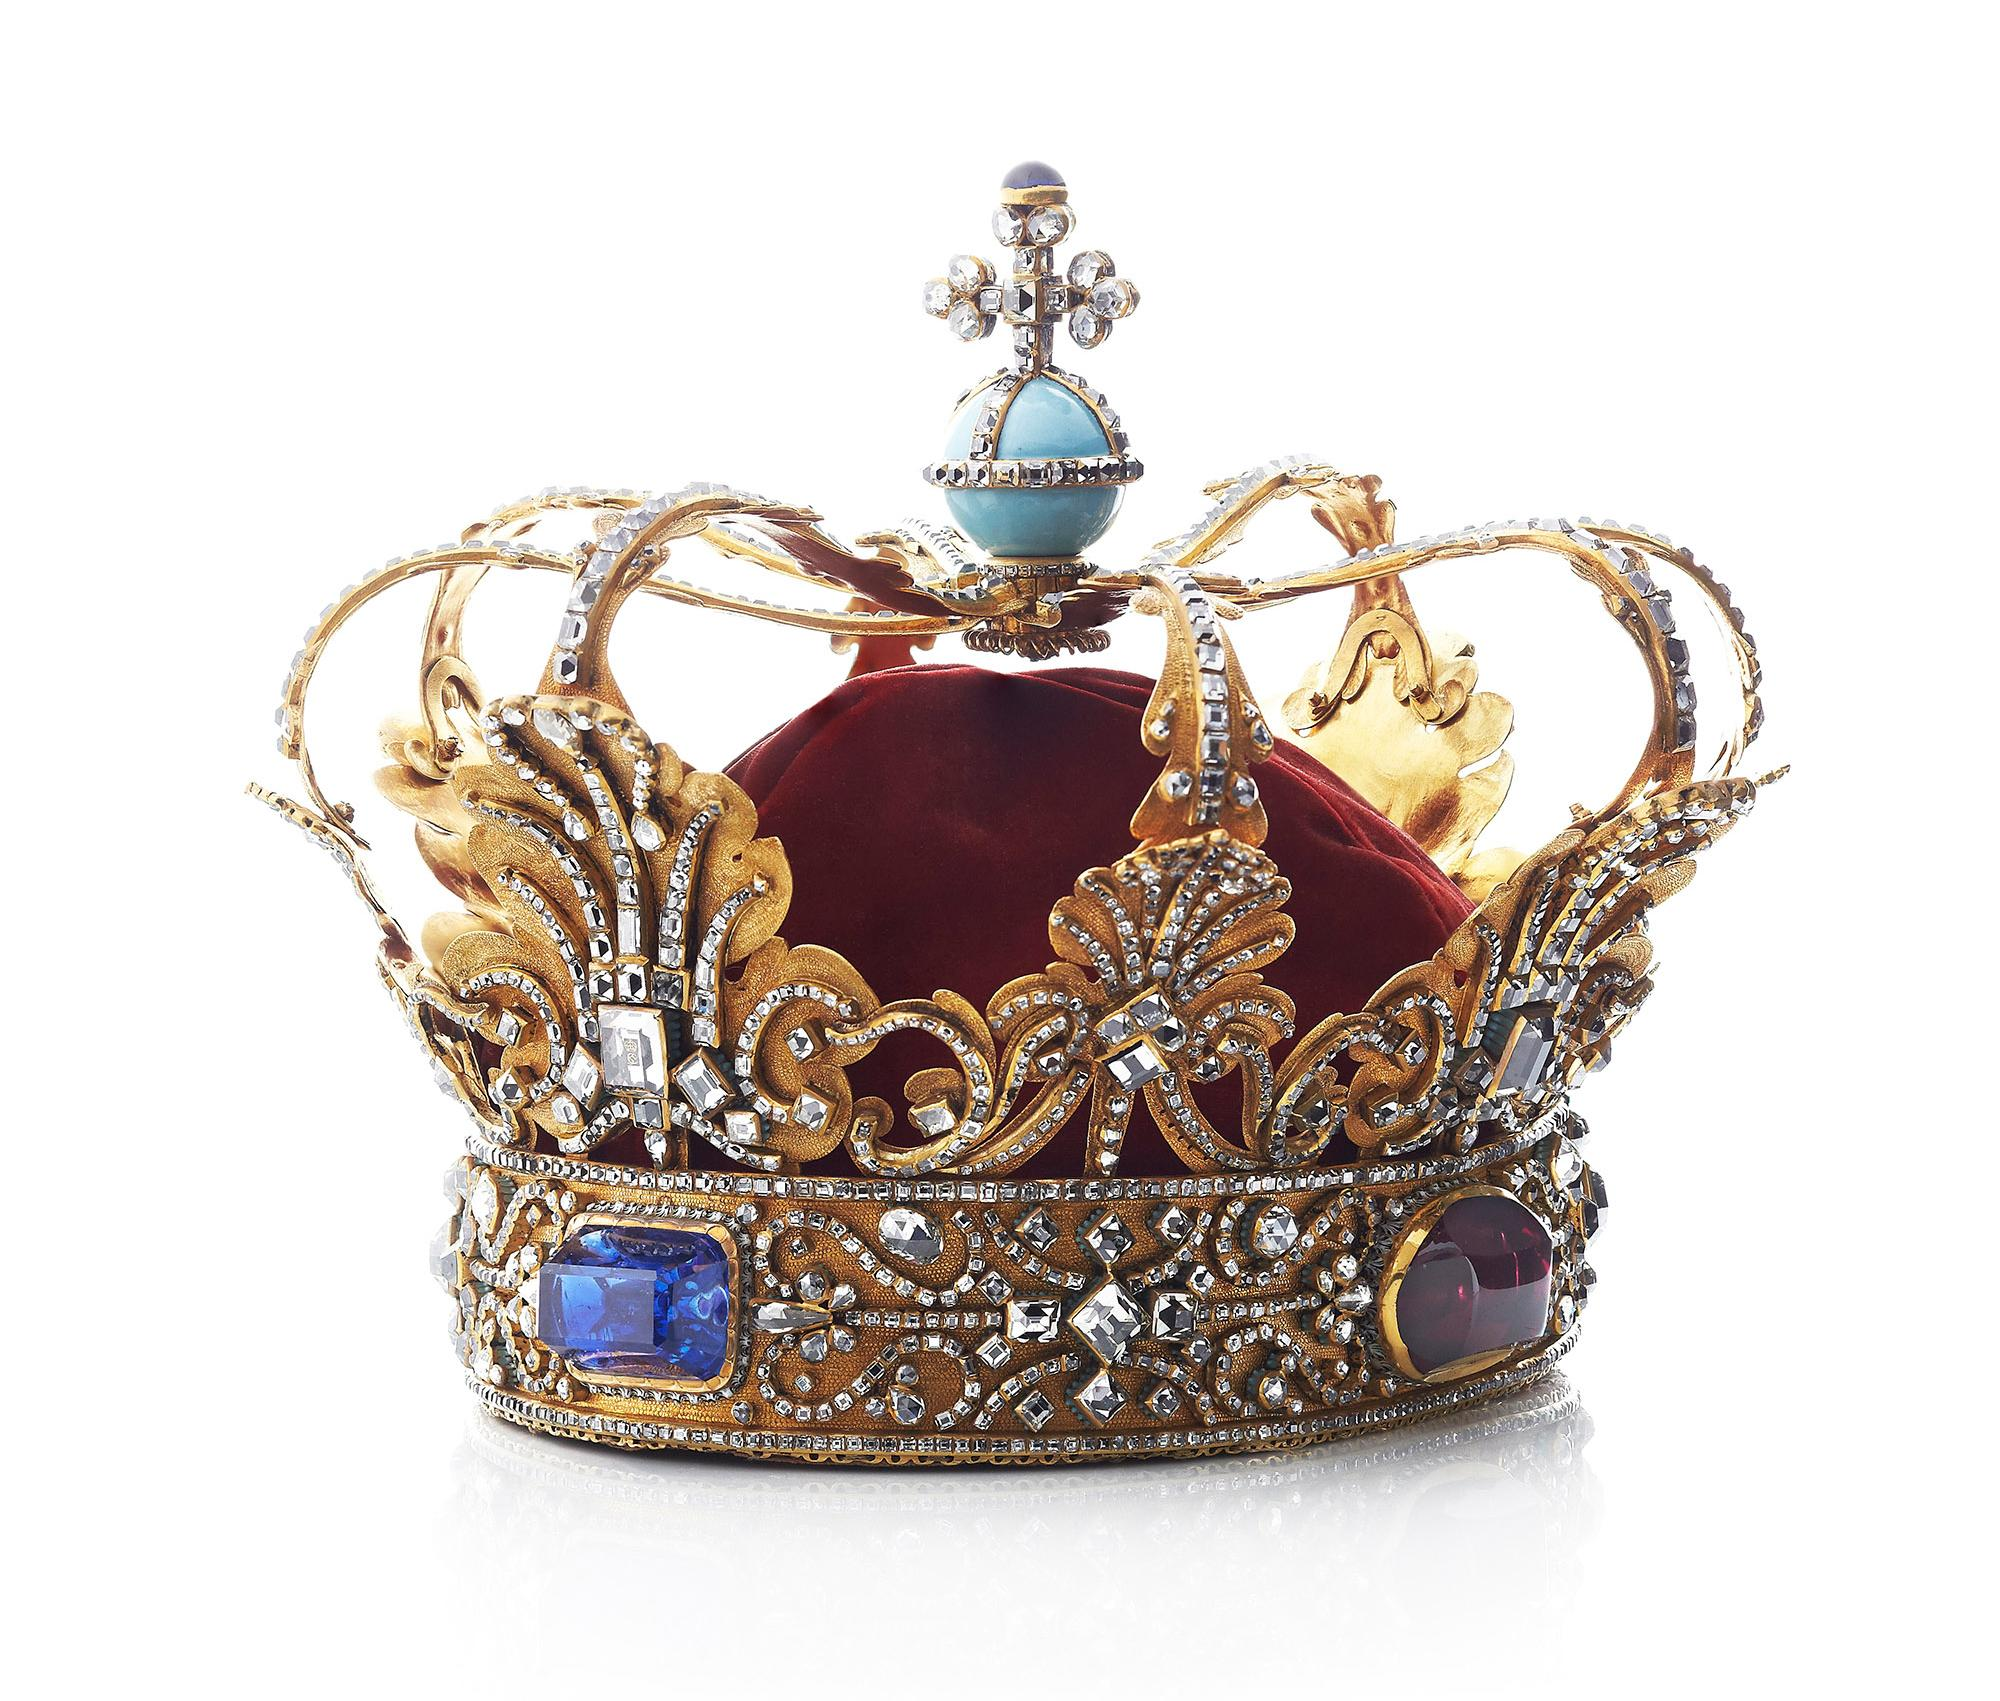 The Crown of the Absolute Monarchs, used by the kings from Christian V to Christian VIII is one of the many treasures of Rosenborg Castle. – © Iben Kaufmann